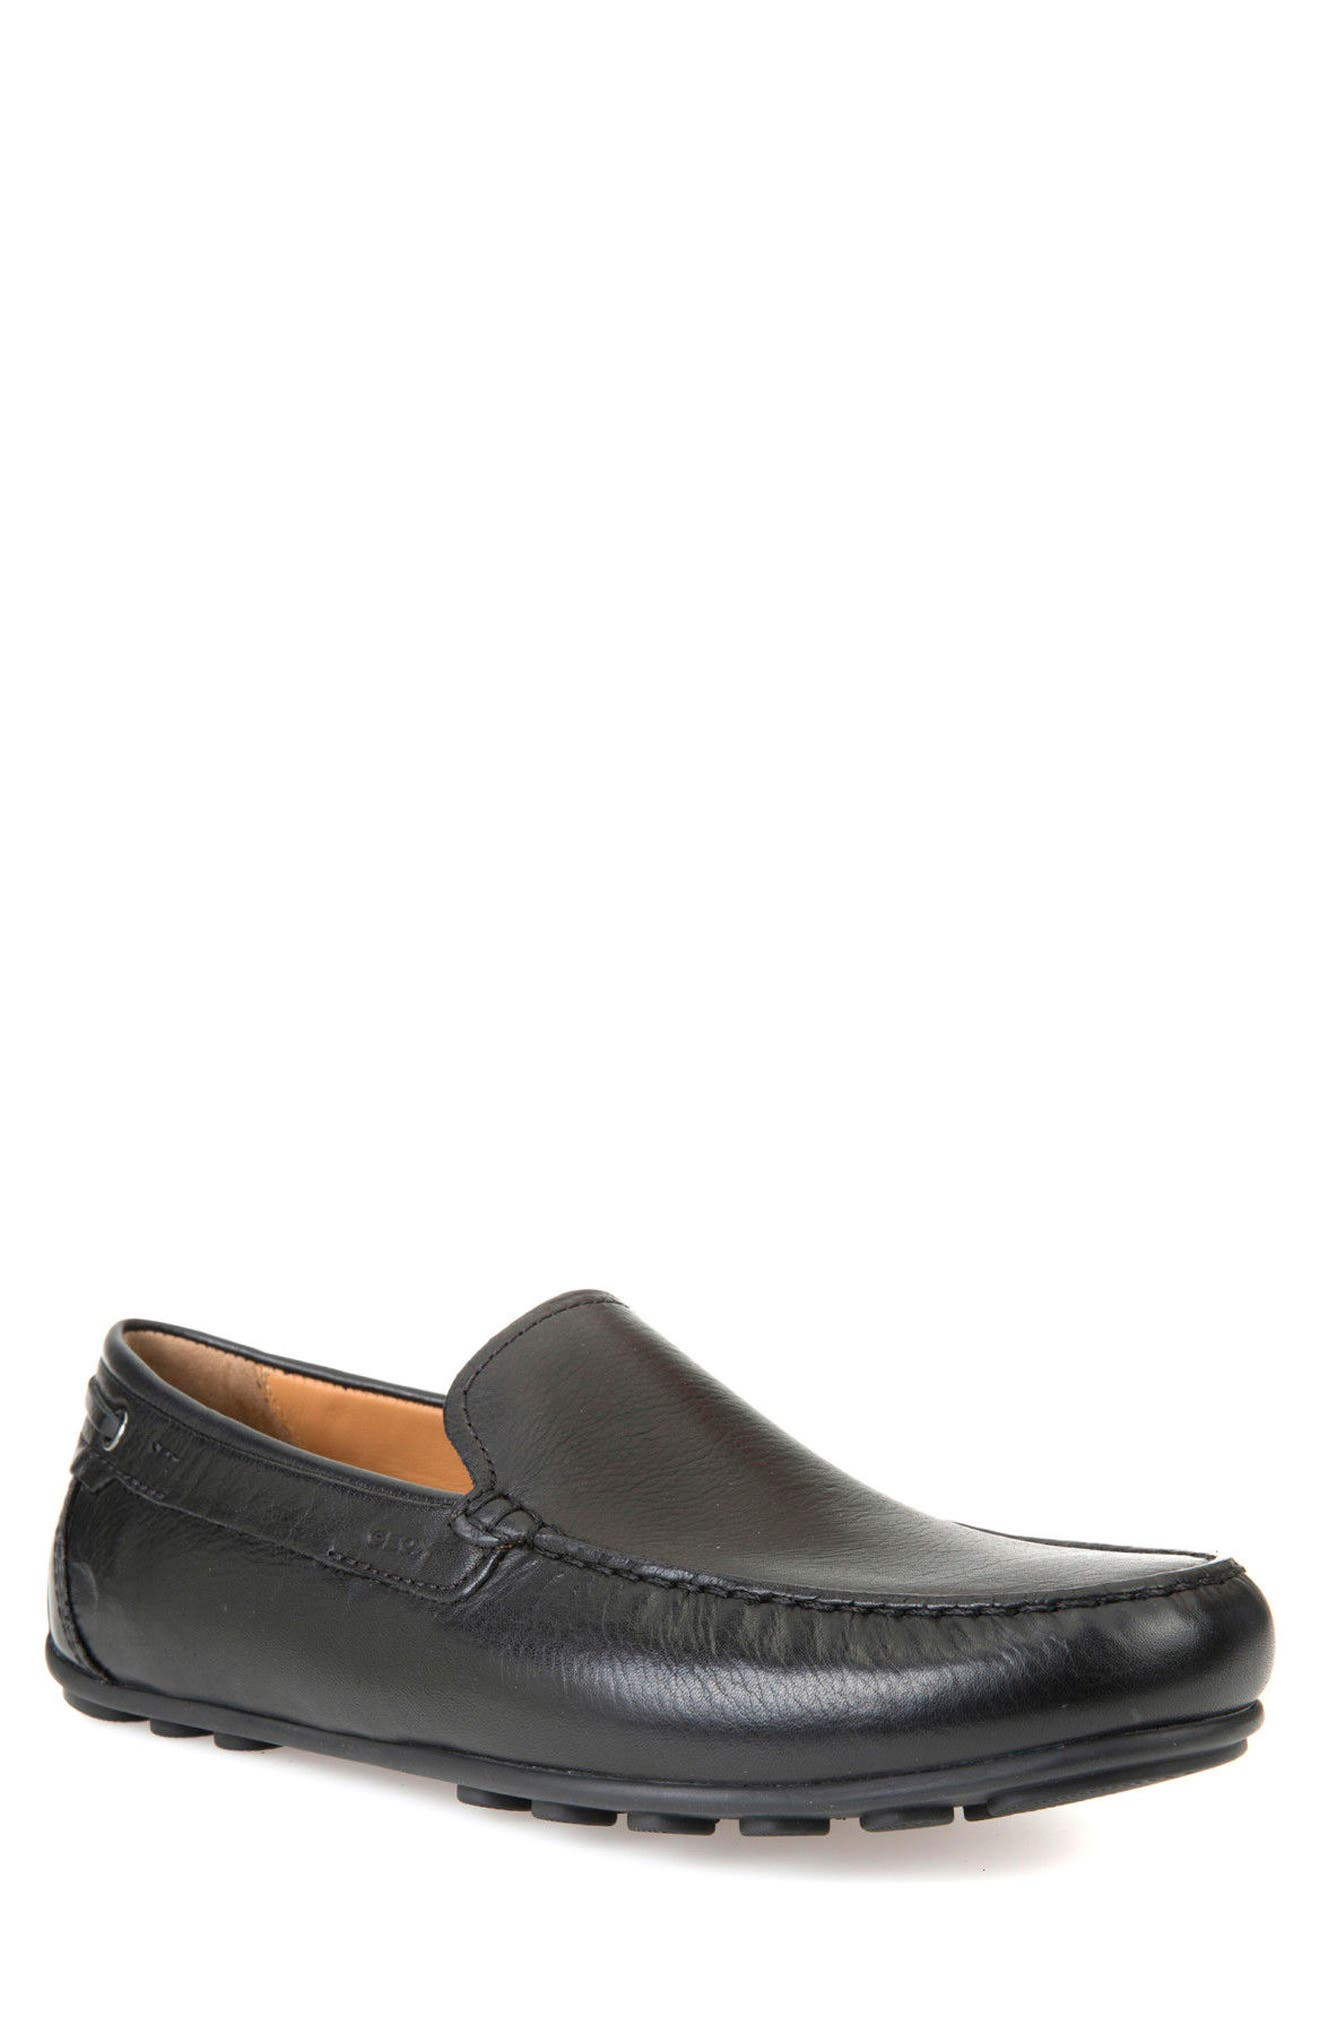 Giona 8 Driving Shoe,                         Main,                         color,